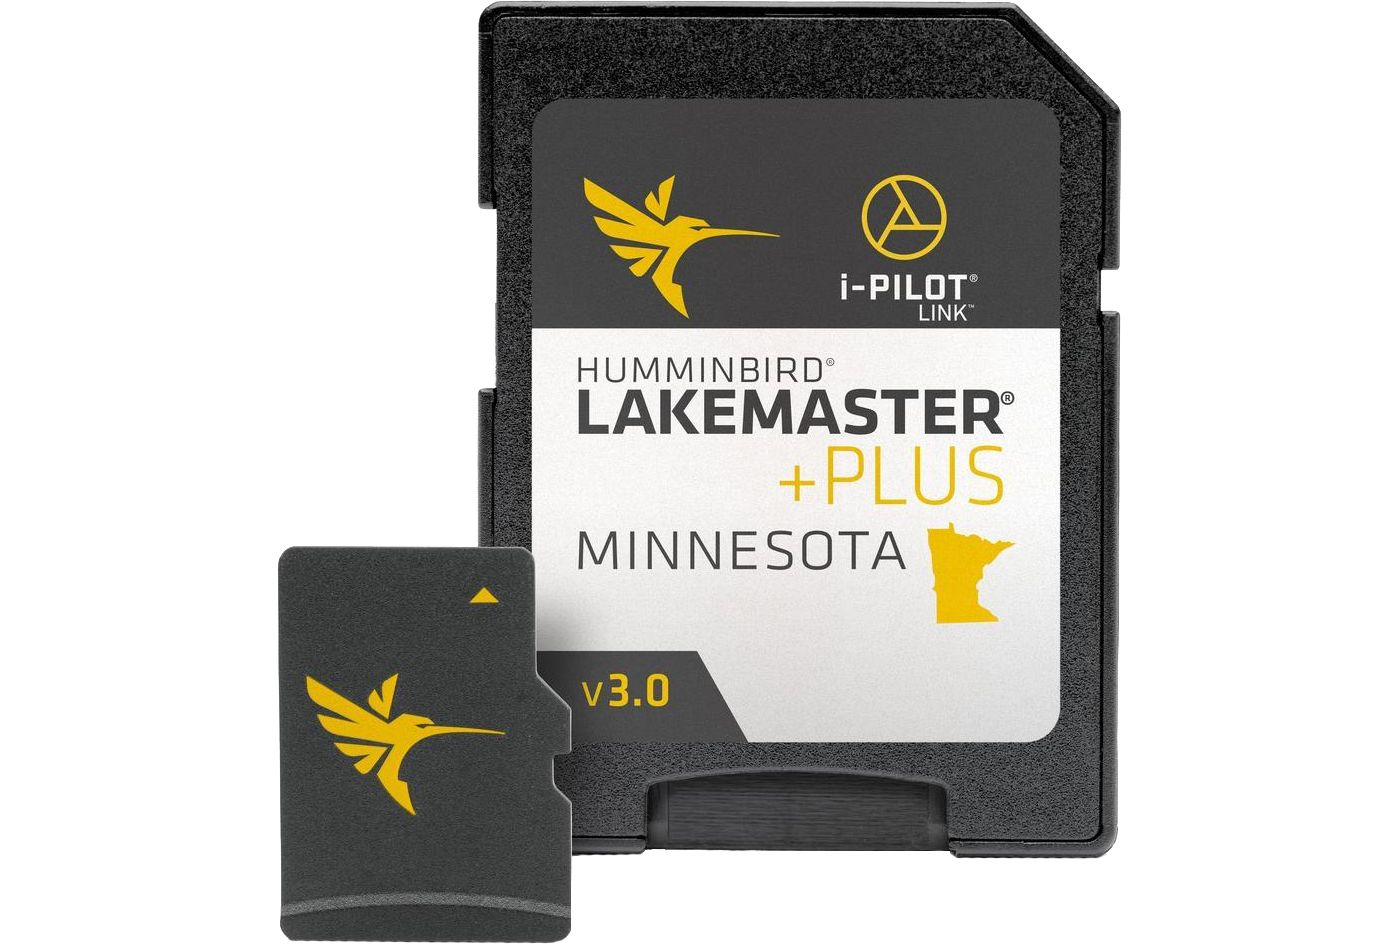 Humminbird LakeMaster Minnesota PLUS V3 Map Card